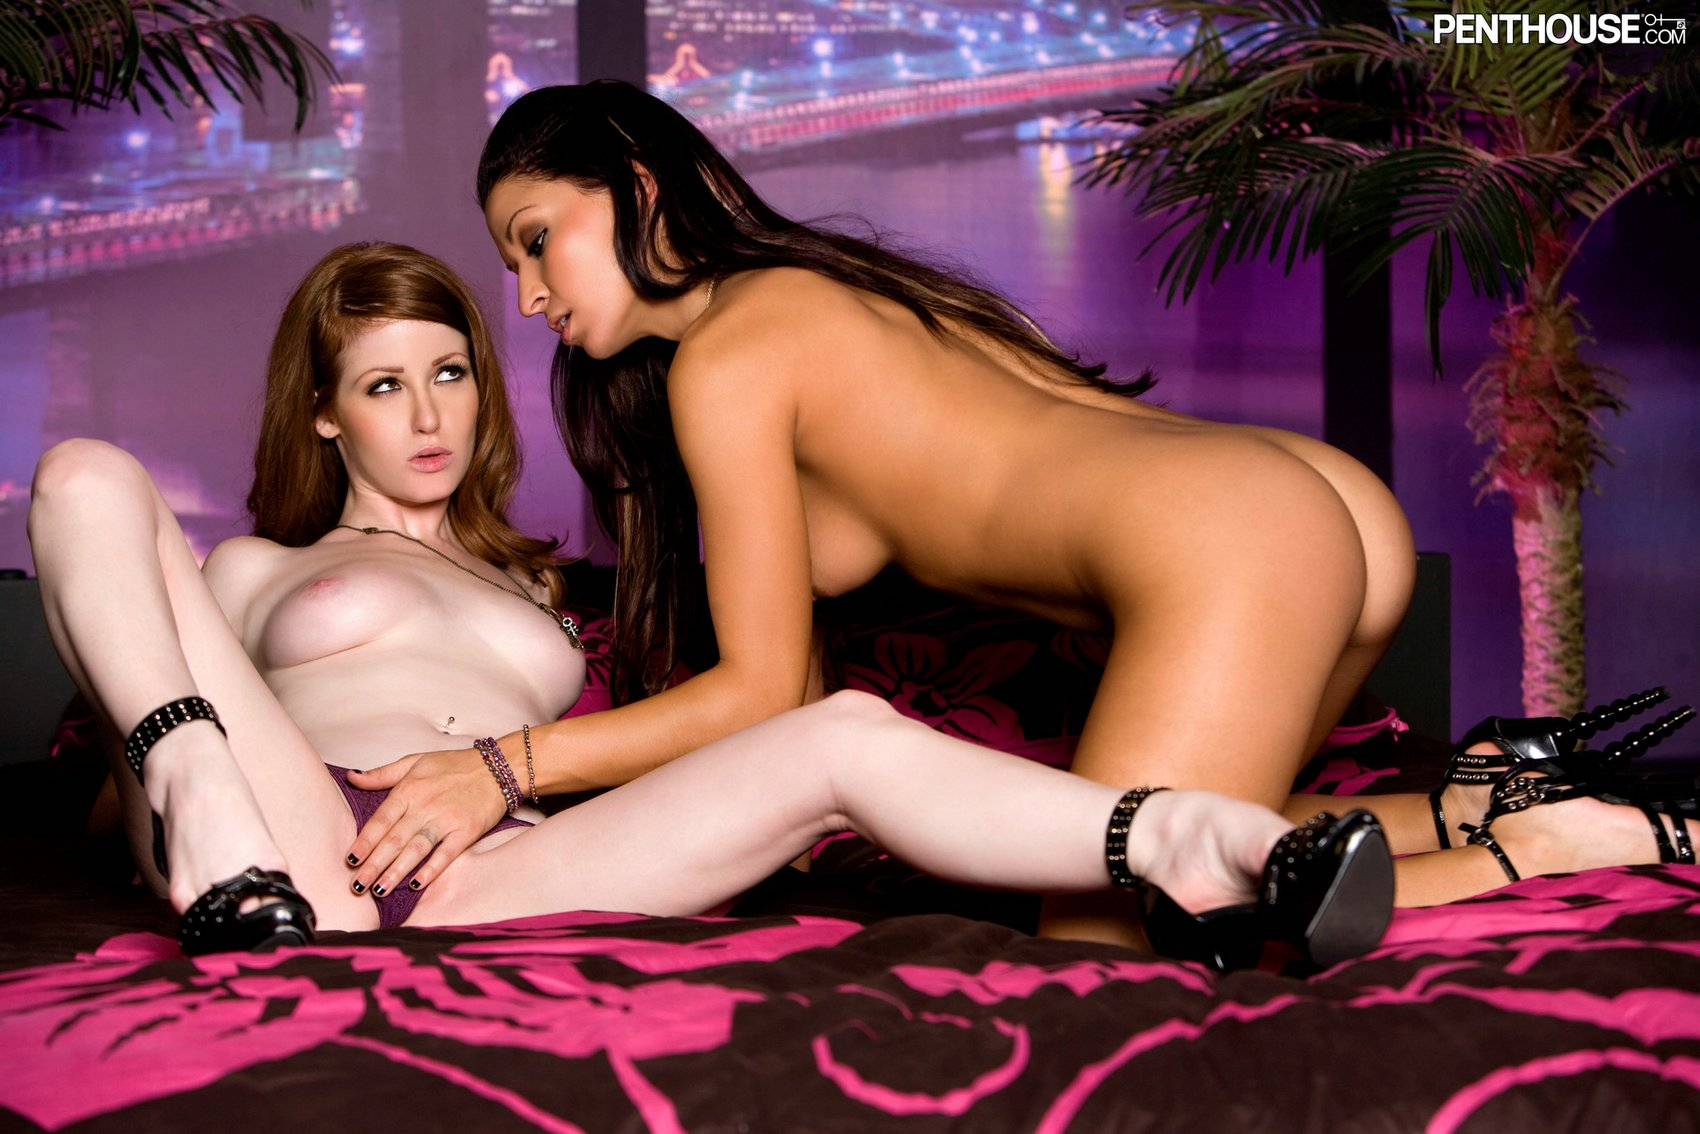 Cannot be! Nikki rhodes licking pussy seems me